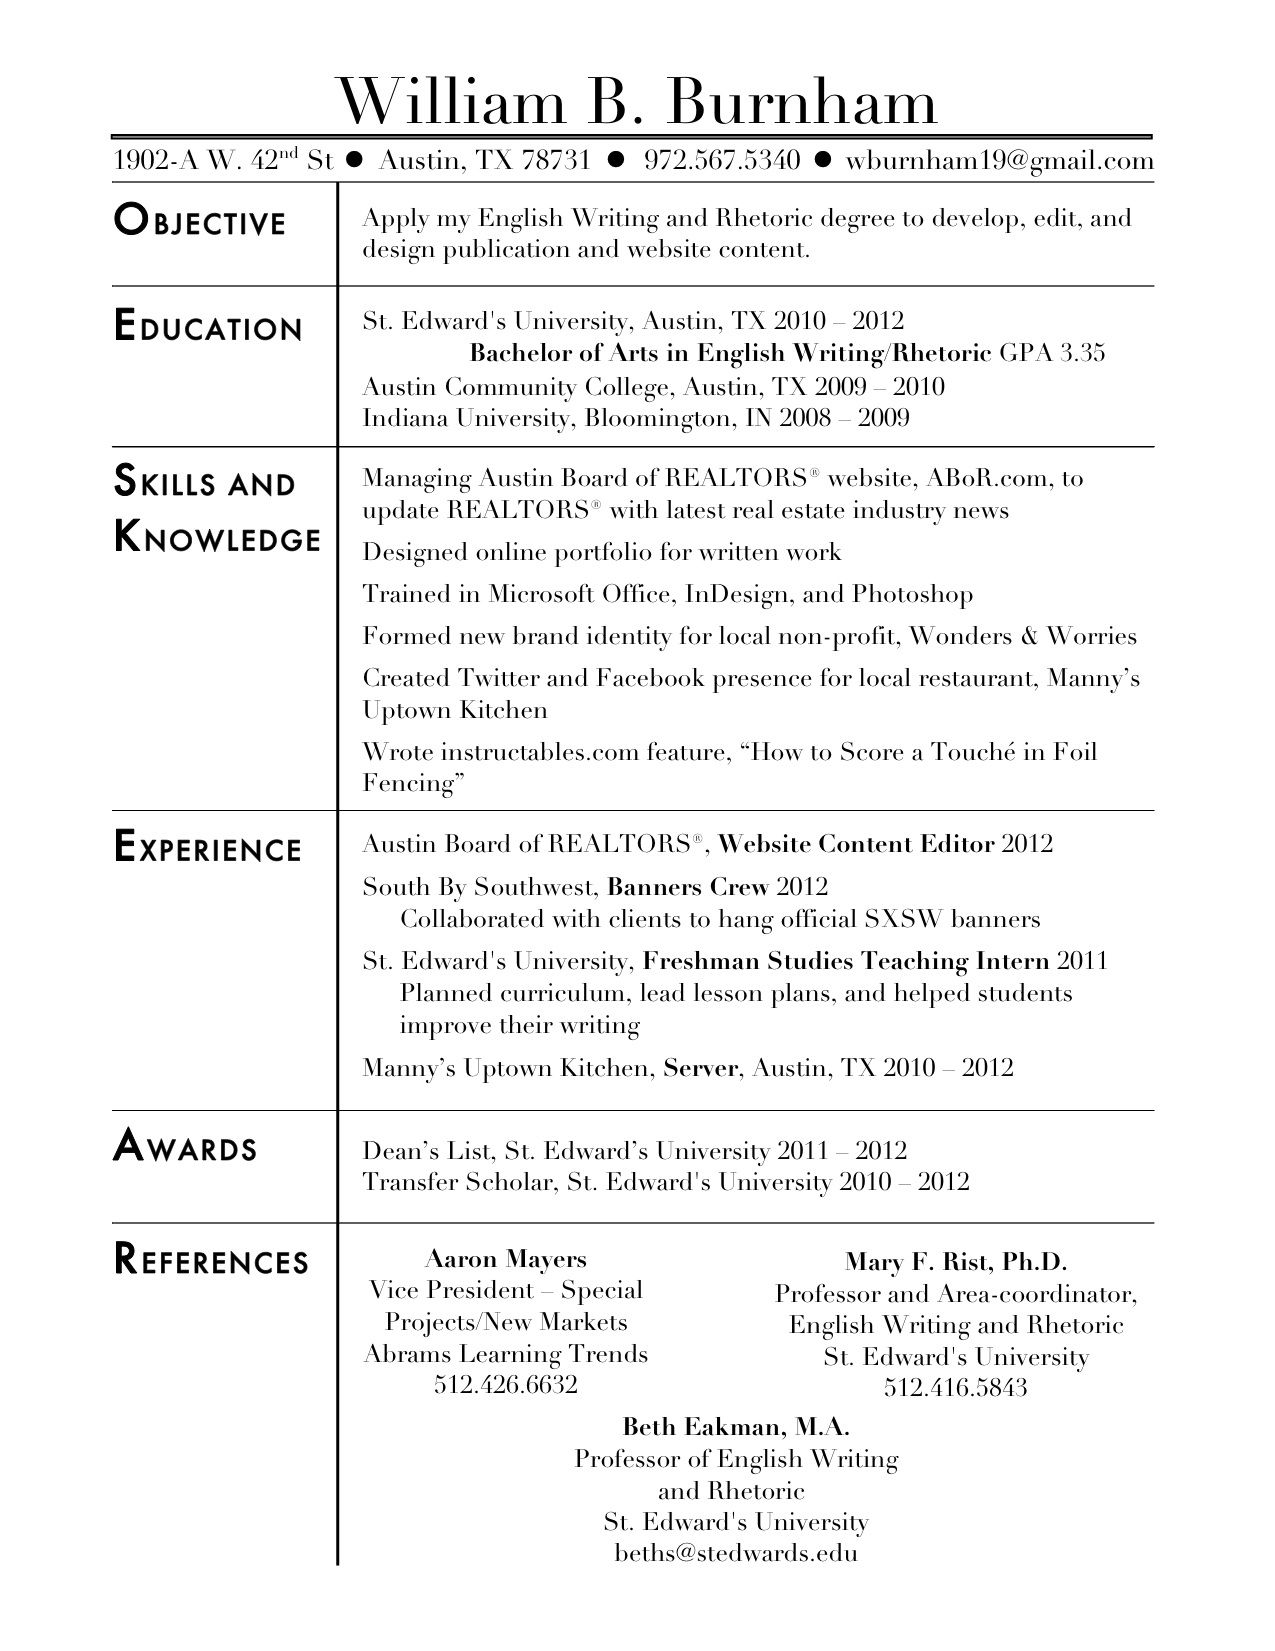 16 social work resume objective examples - Social Work Resumes And Cover Letters